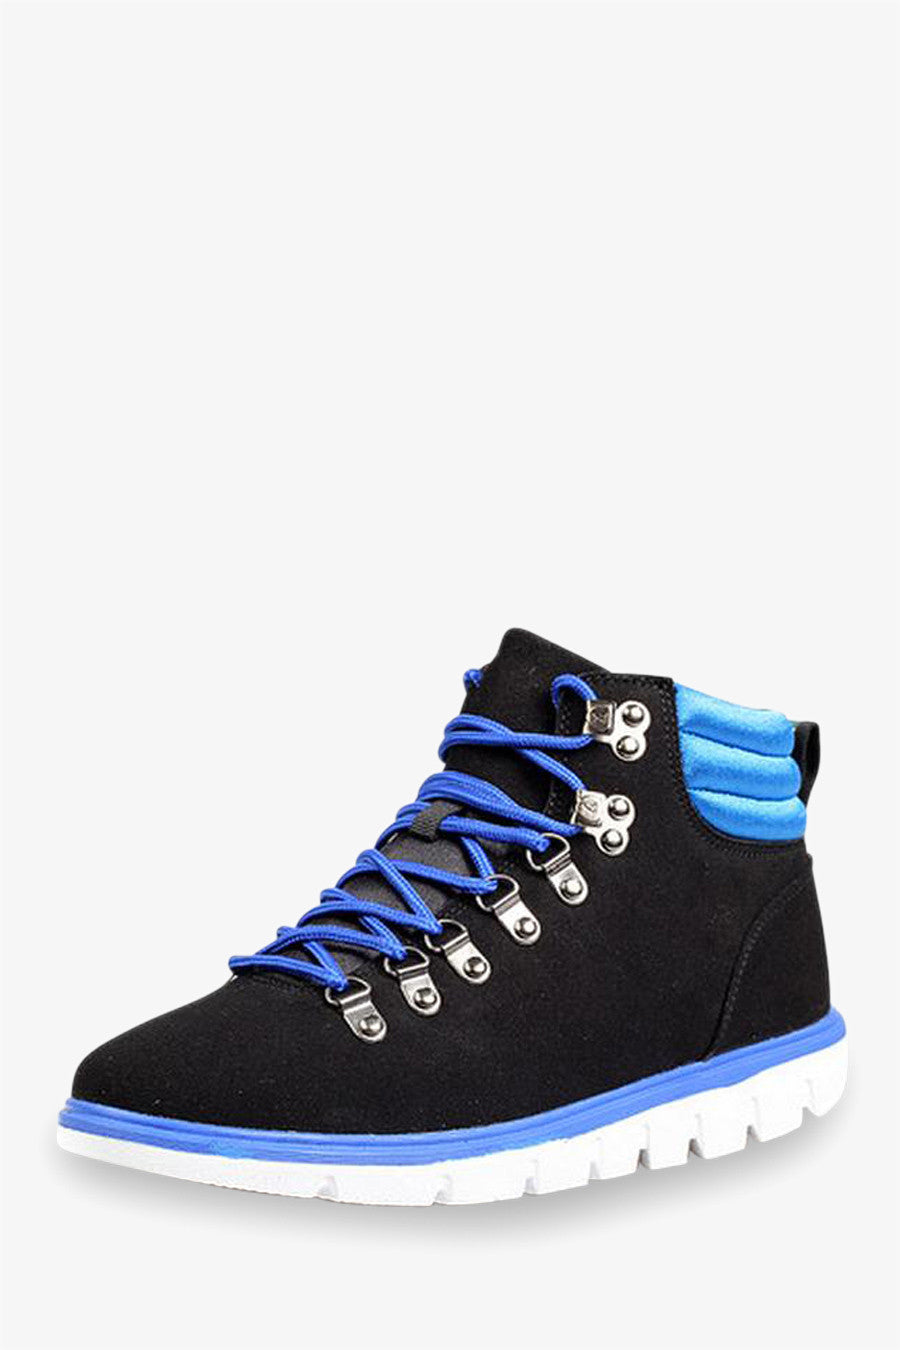 Cozy Boots Black and Blue